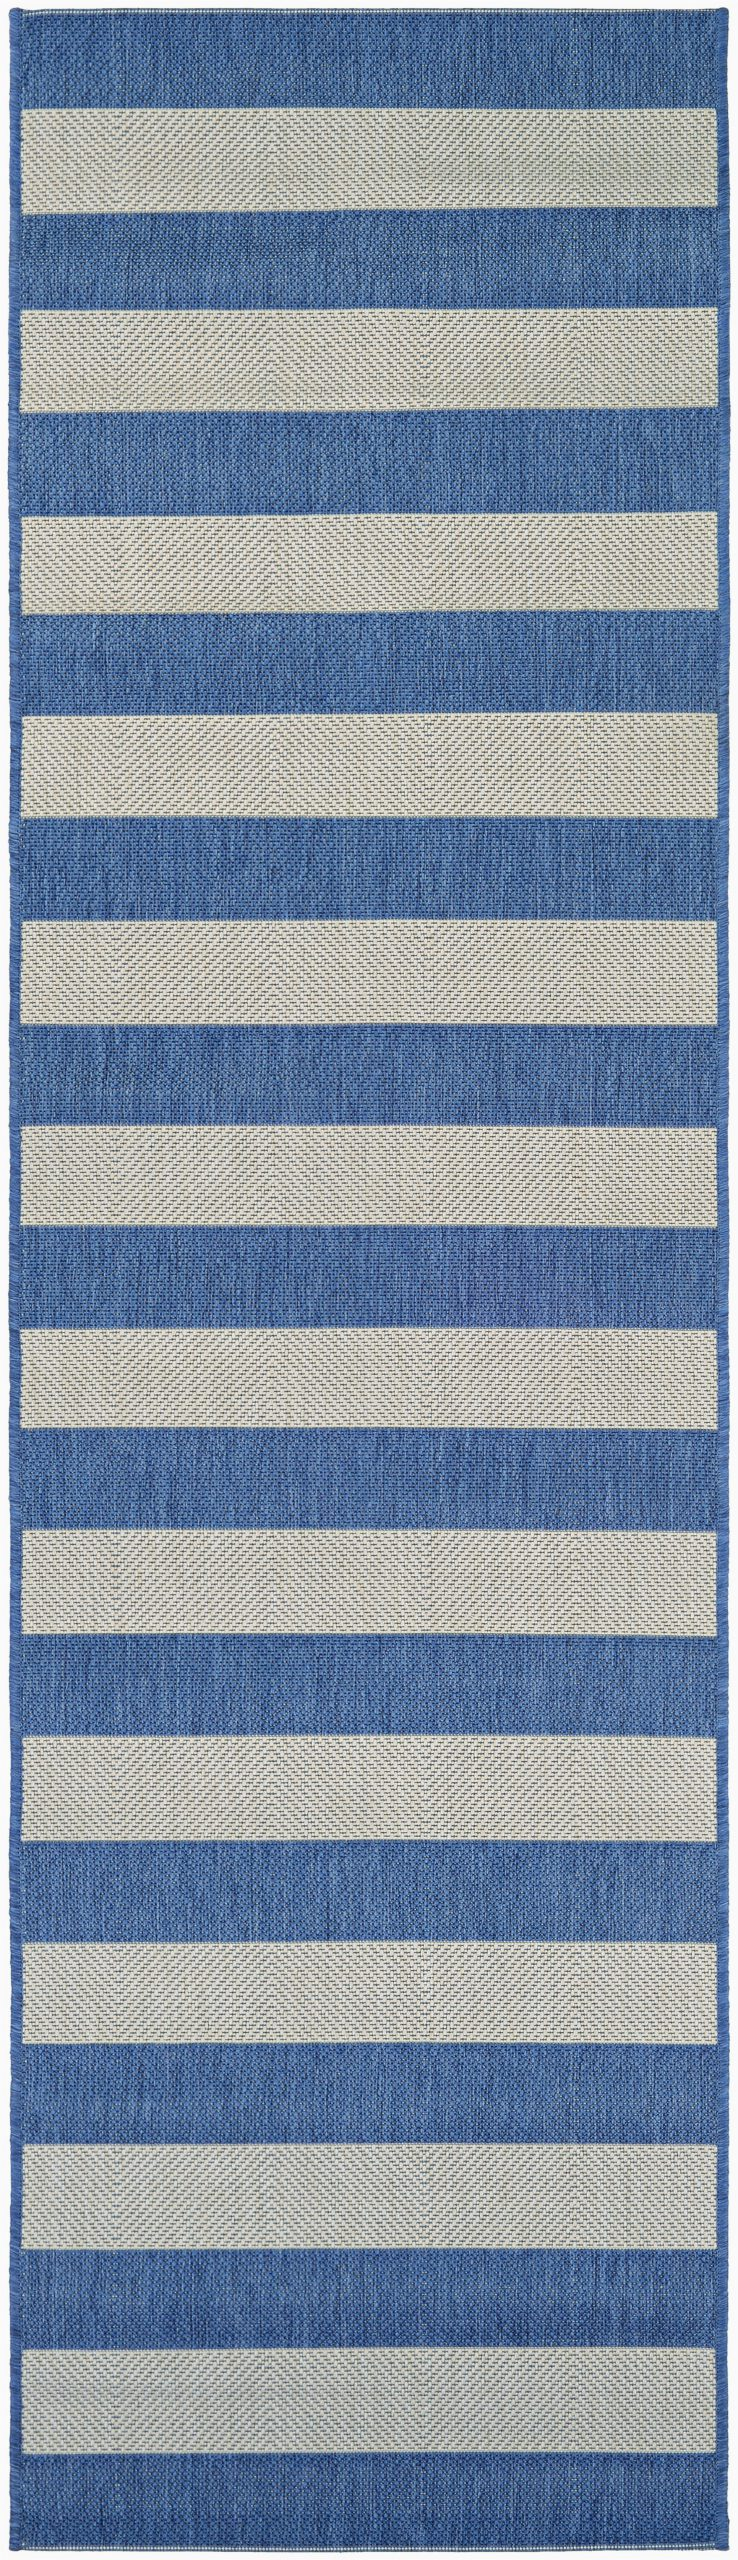 blue striped area rugs c a1247 a